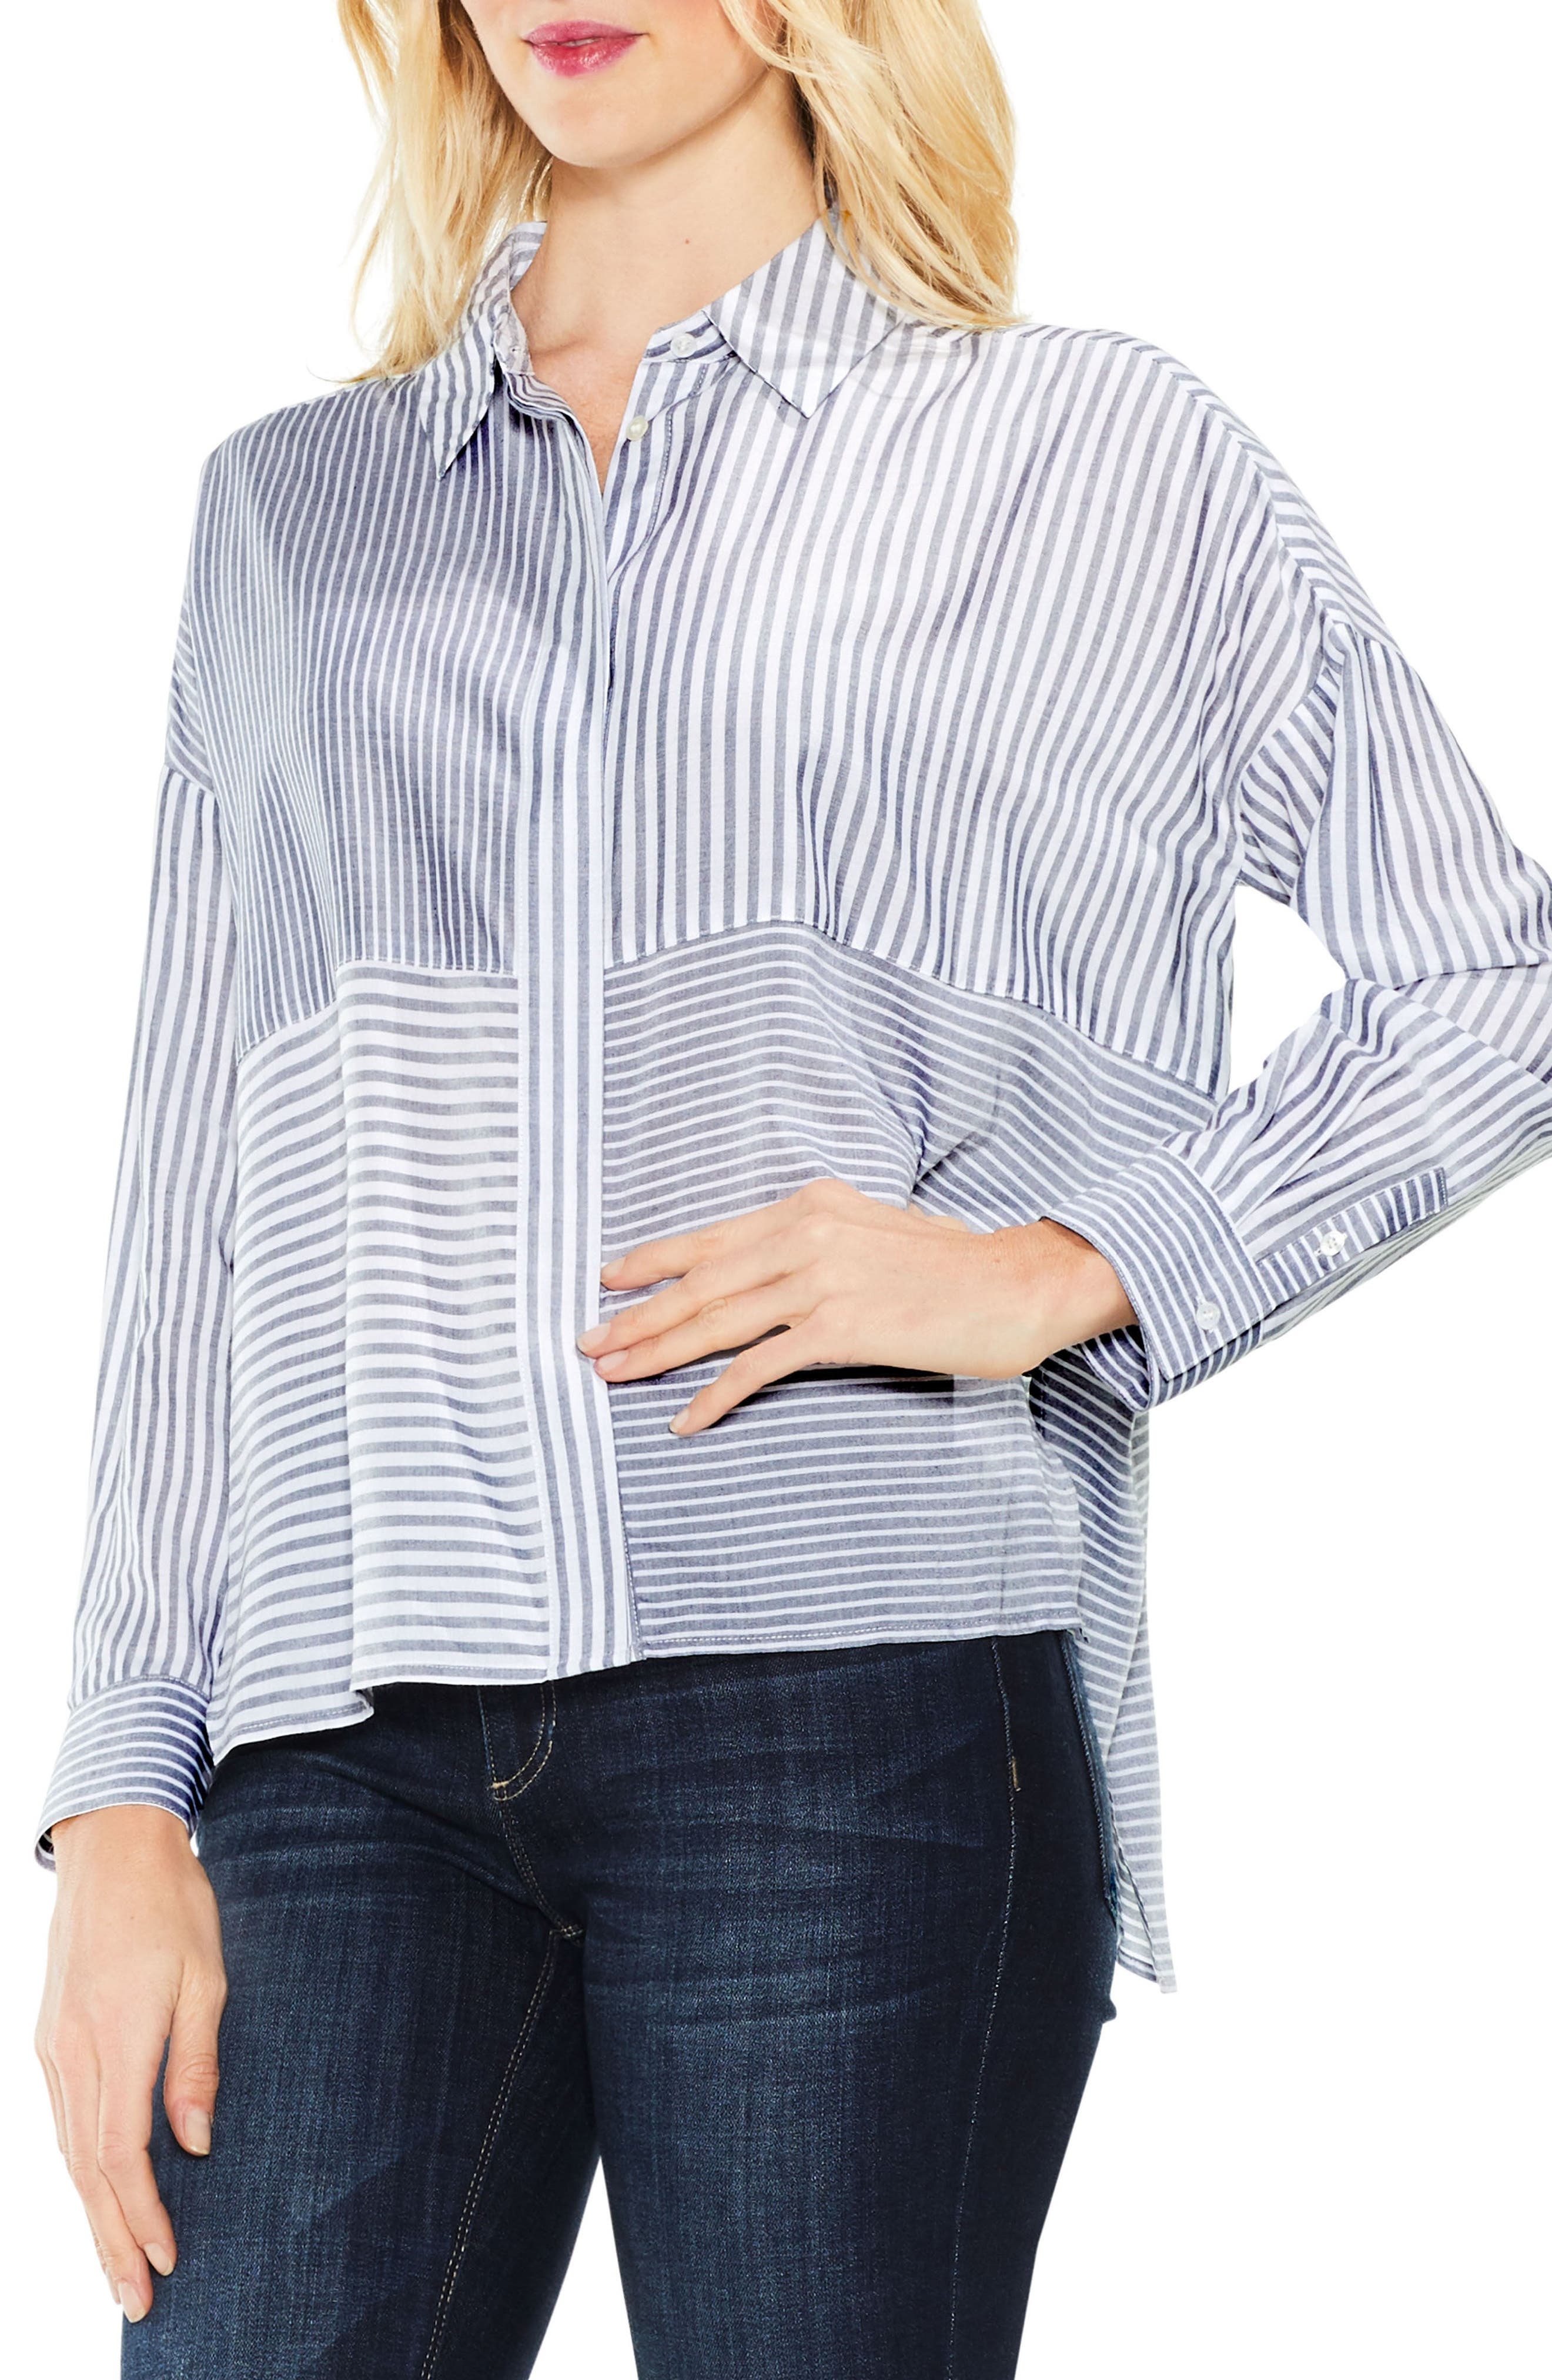 Alternate Image 1 Selected - Two by Vince Camuto Mix Stripe Button Down Shirt